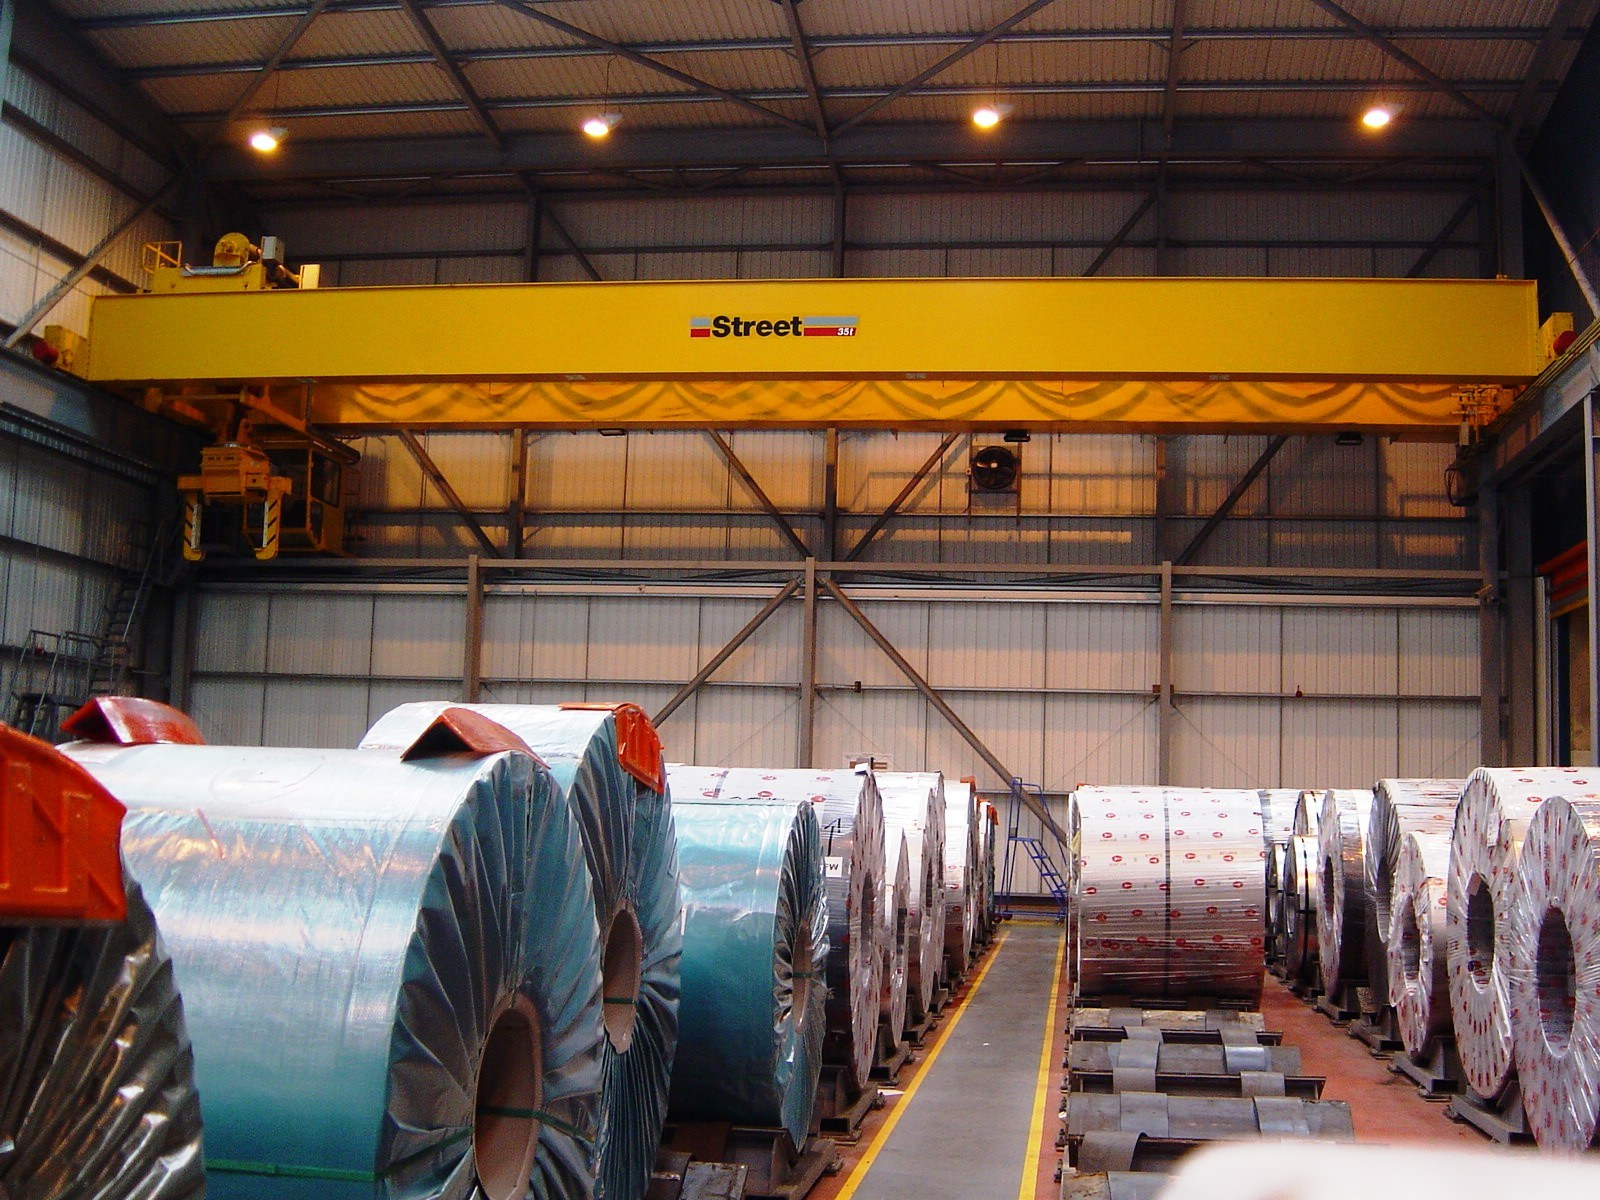 Steel Coil Distribution Warehouse (Remote Crane Control)